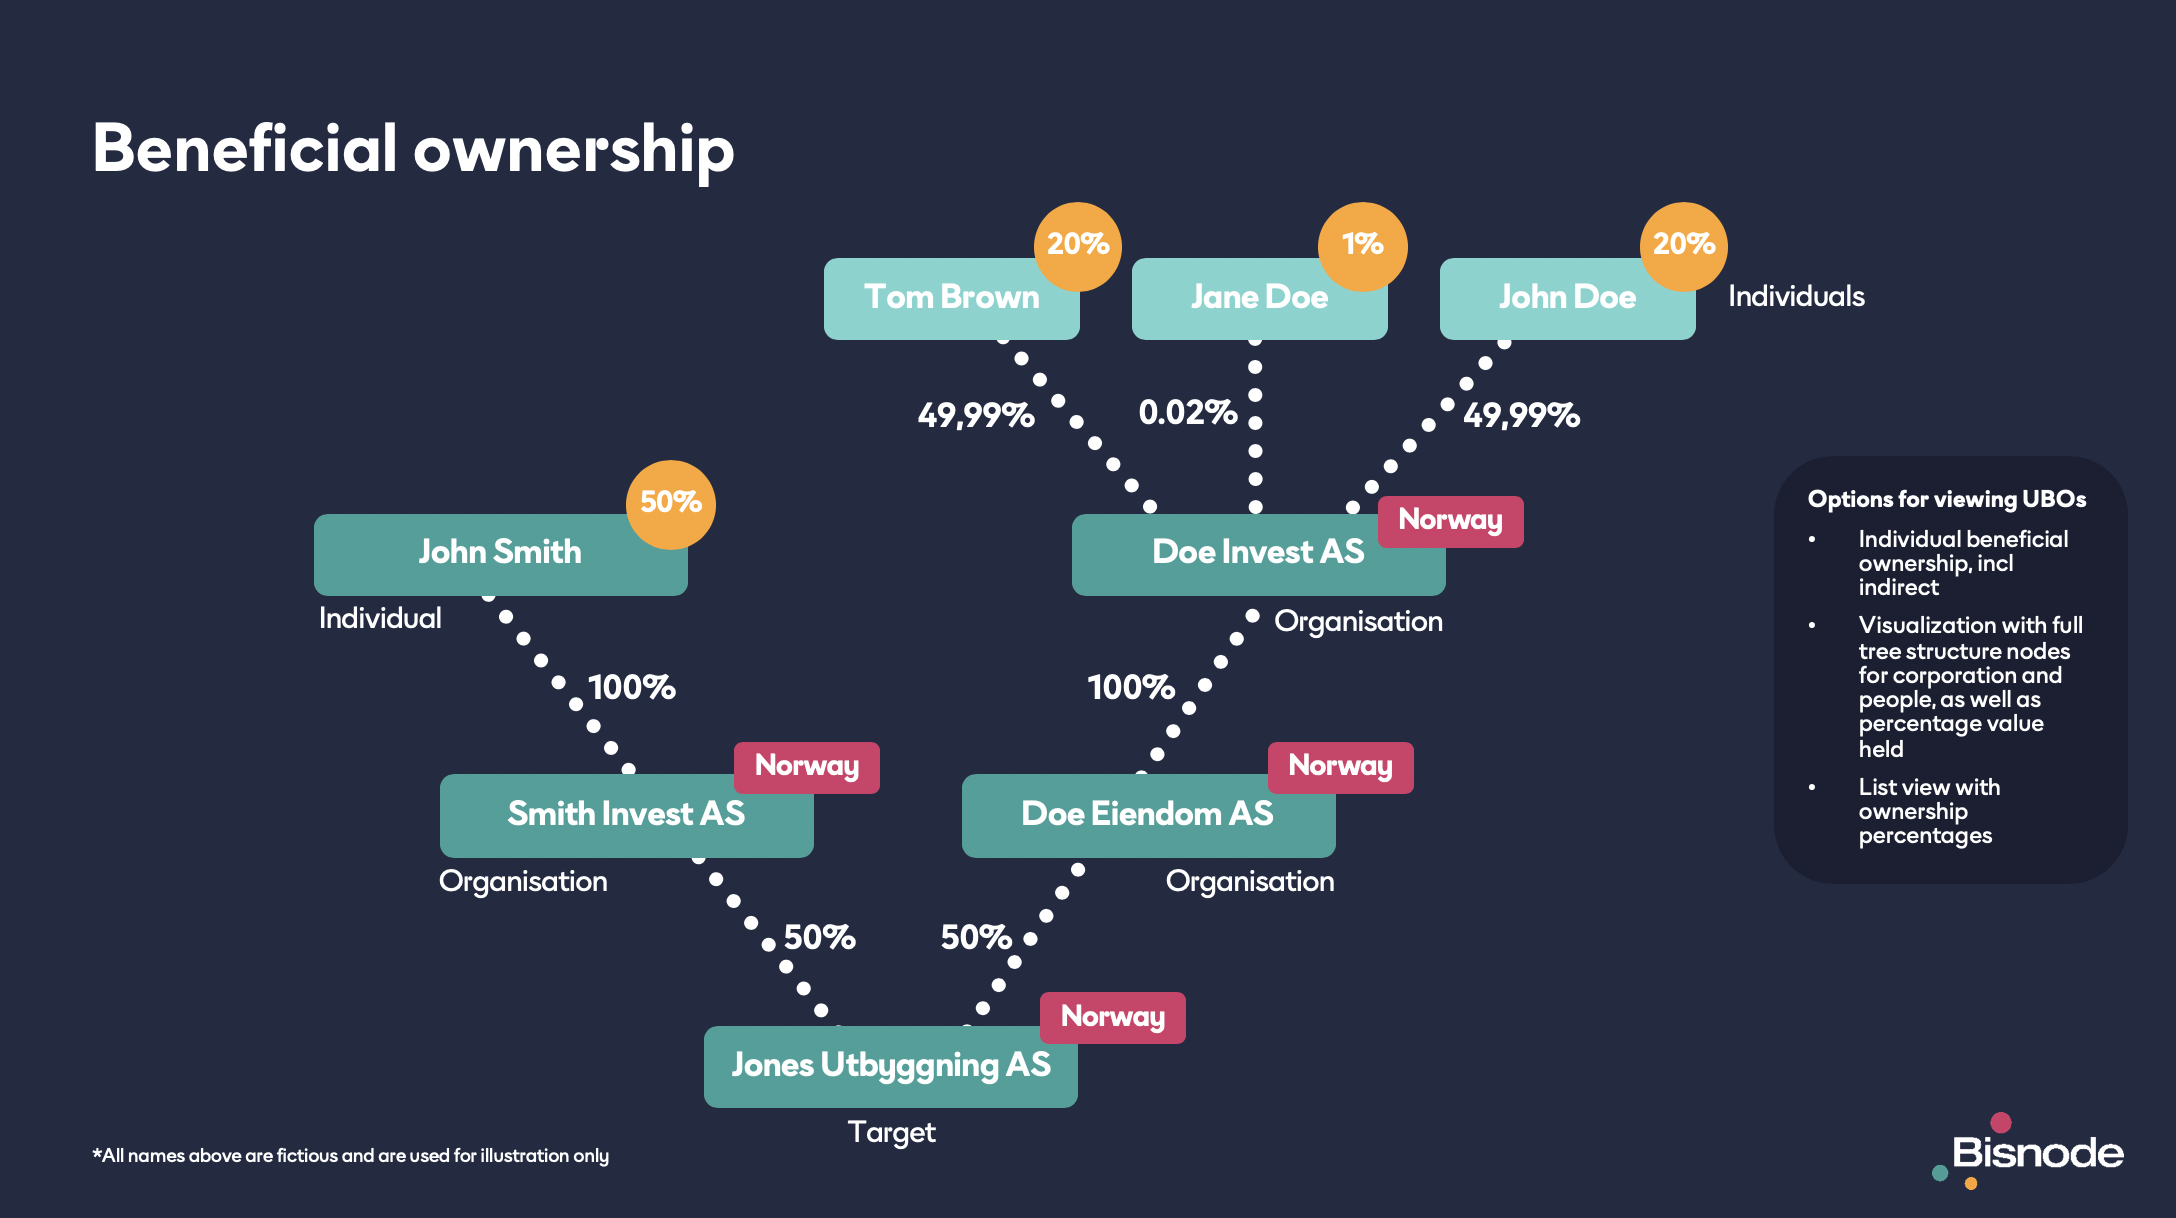 Beneficial ownership Structure